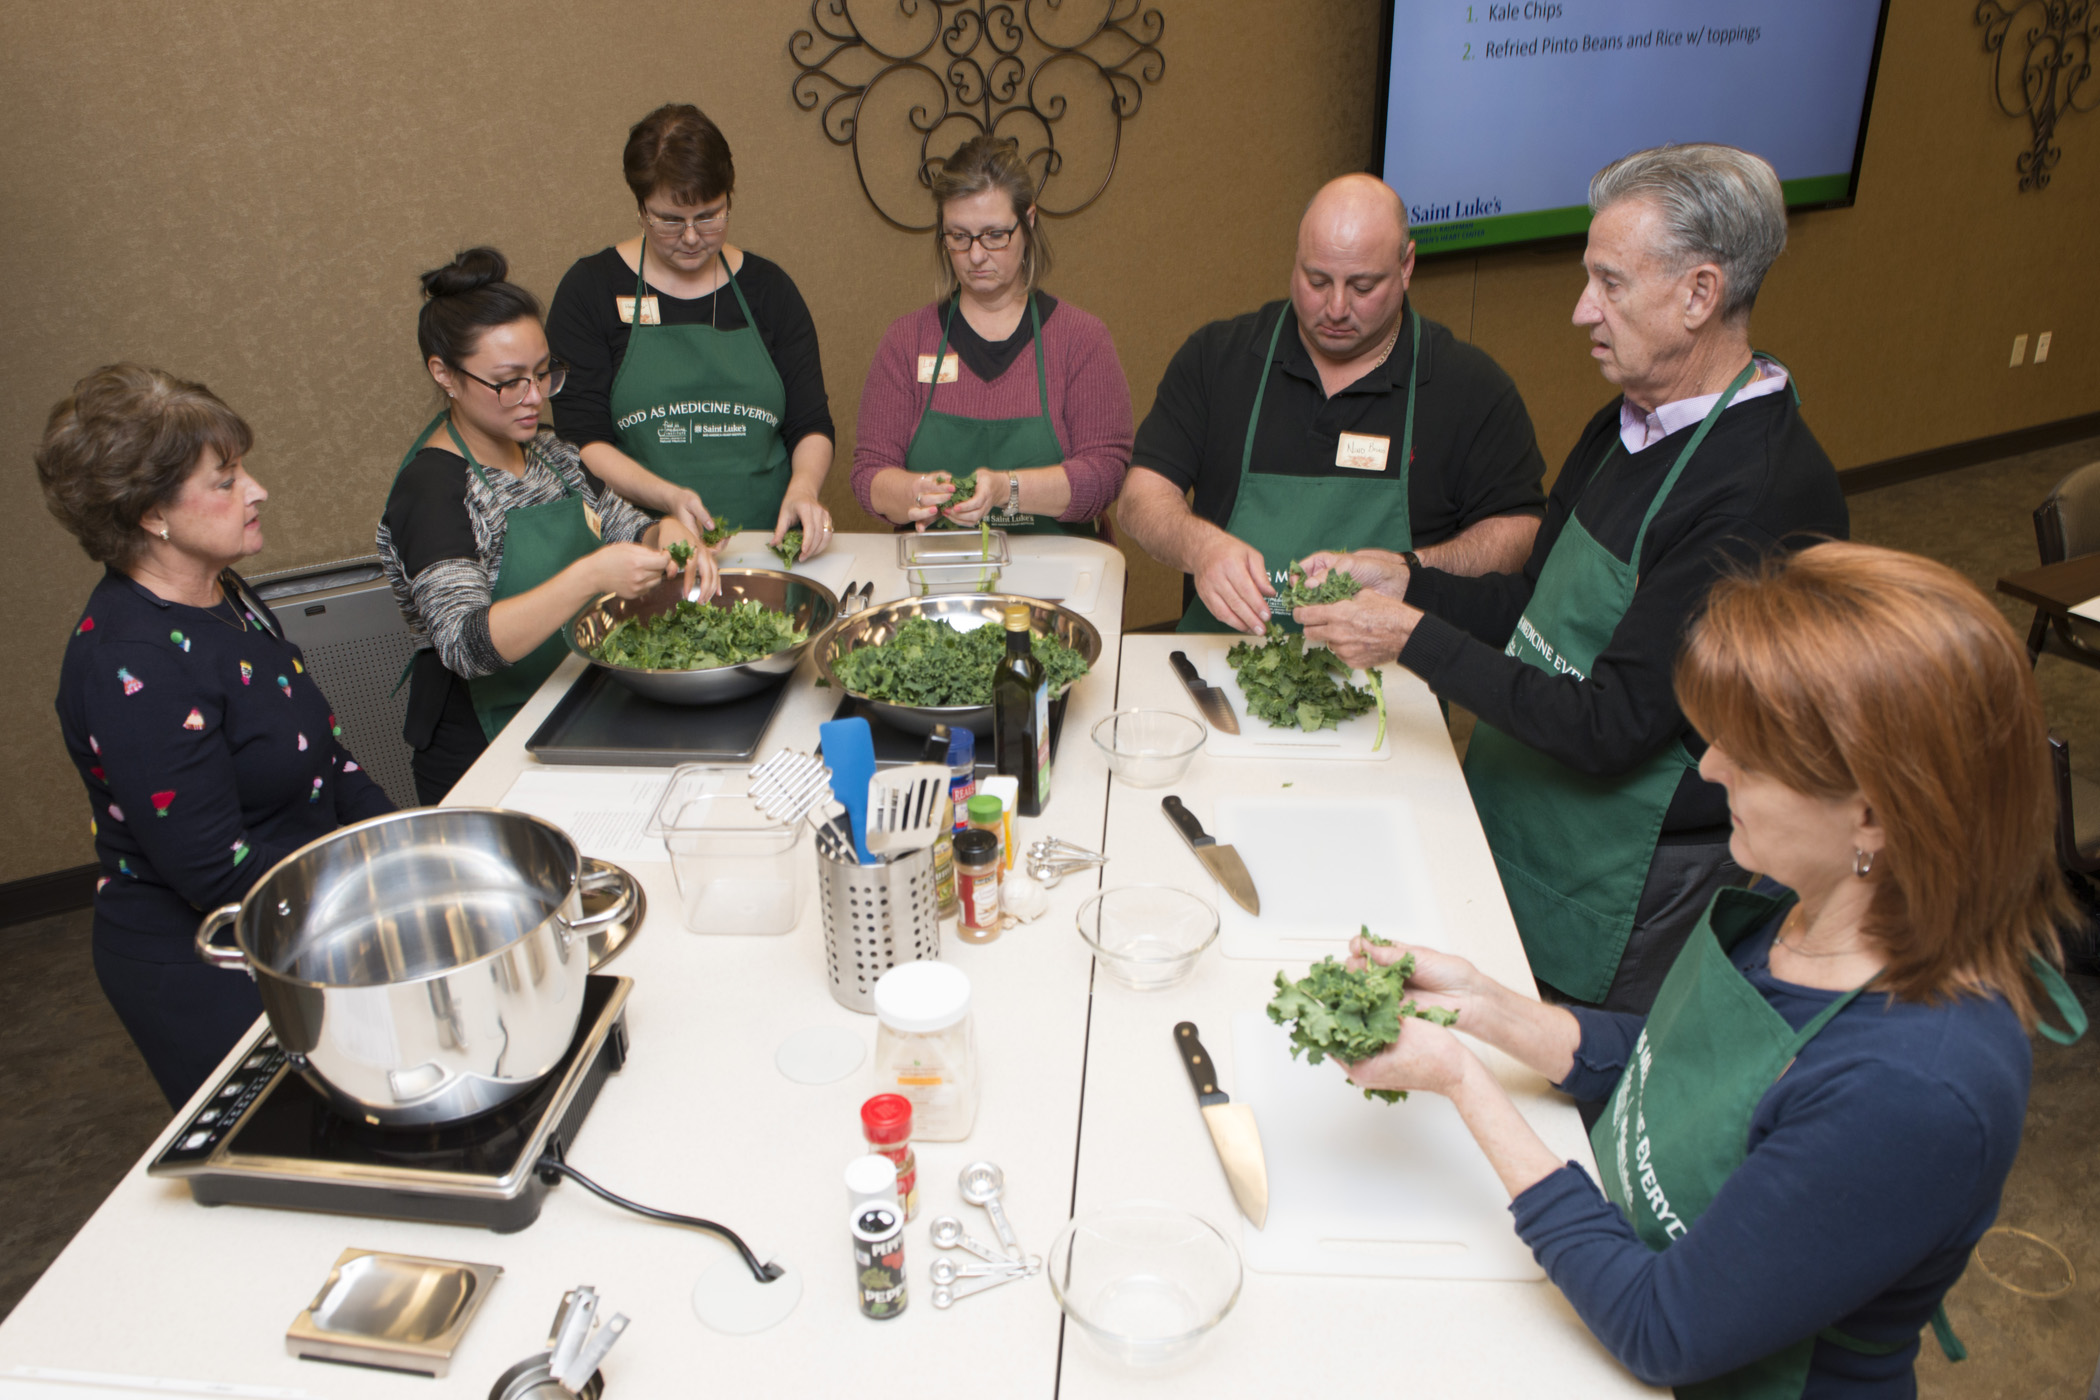 In FAME classes, students have fun while learning to cook tasty, nutritious meals.